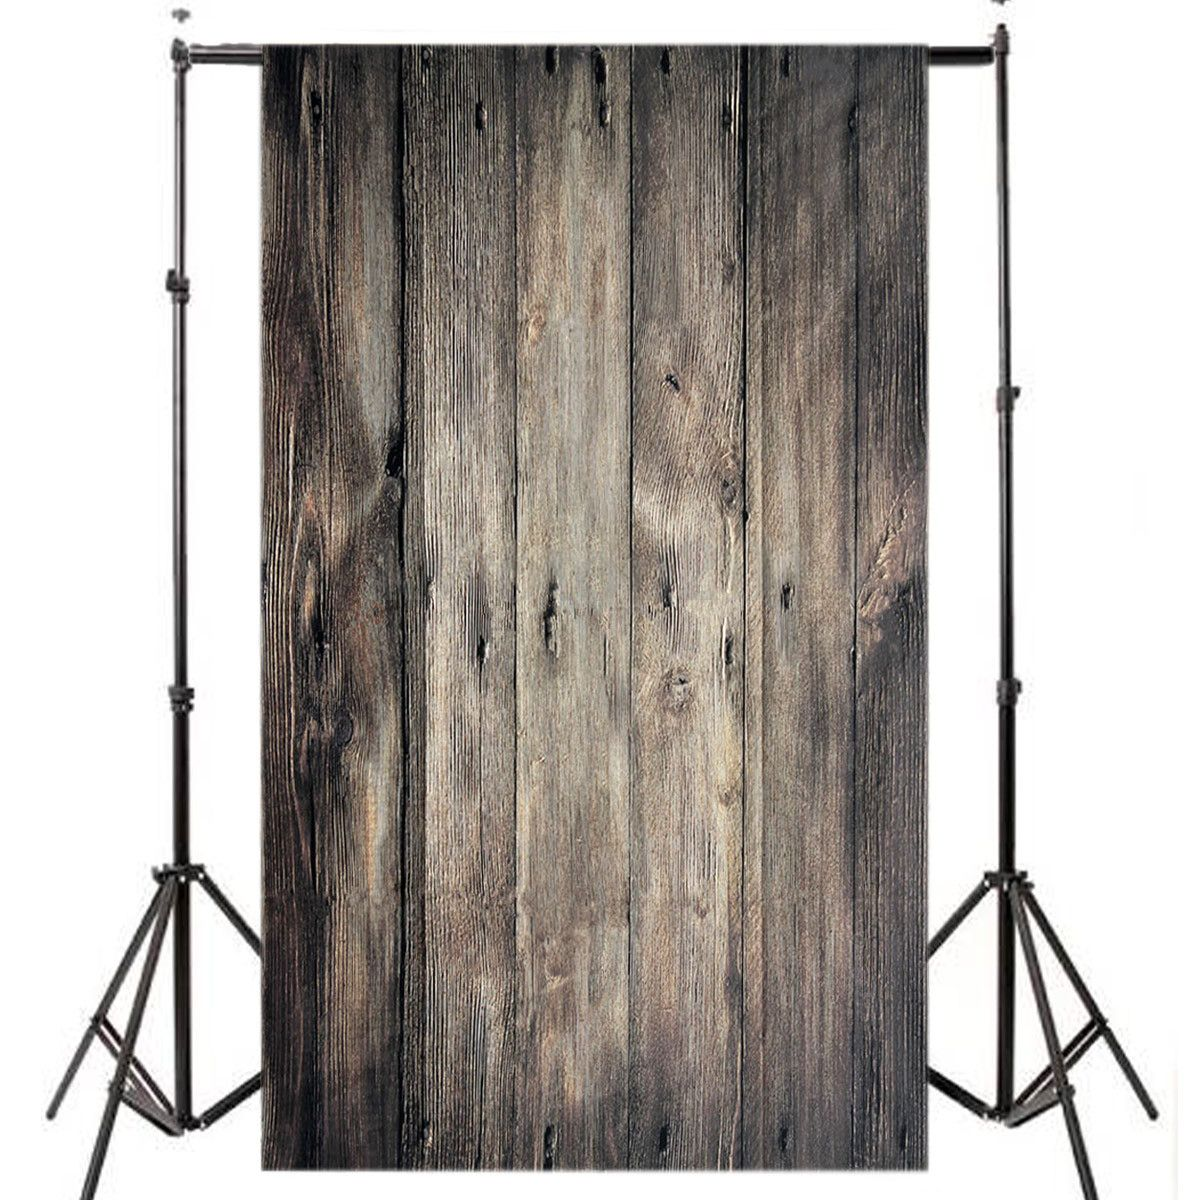 3x5FT Vintage Wooden Plank Wall Floor Costume Wedding Custom Studio Backdrops Photo Background Vinyl New christmas background for baby photo studio props vinyl wooden floor photography backdrops 5x7ft or 3x5ft jiesdx028